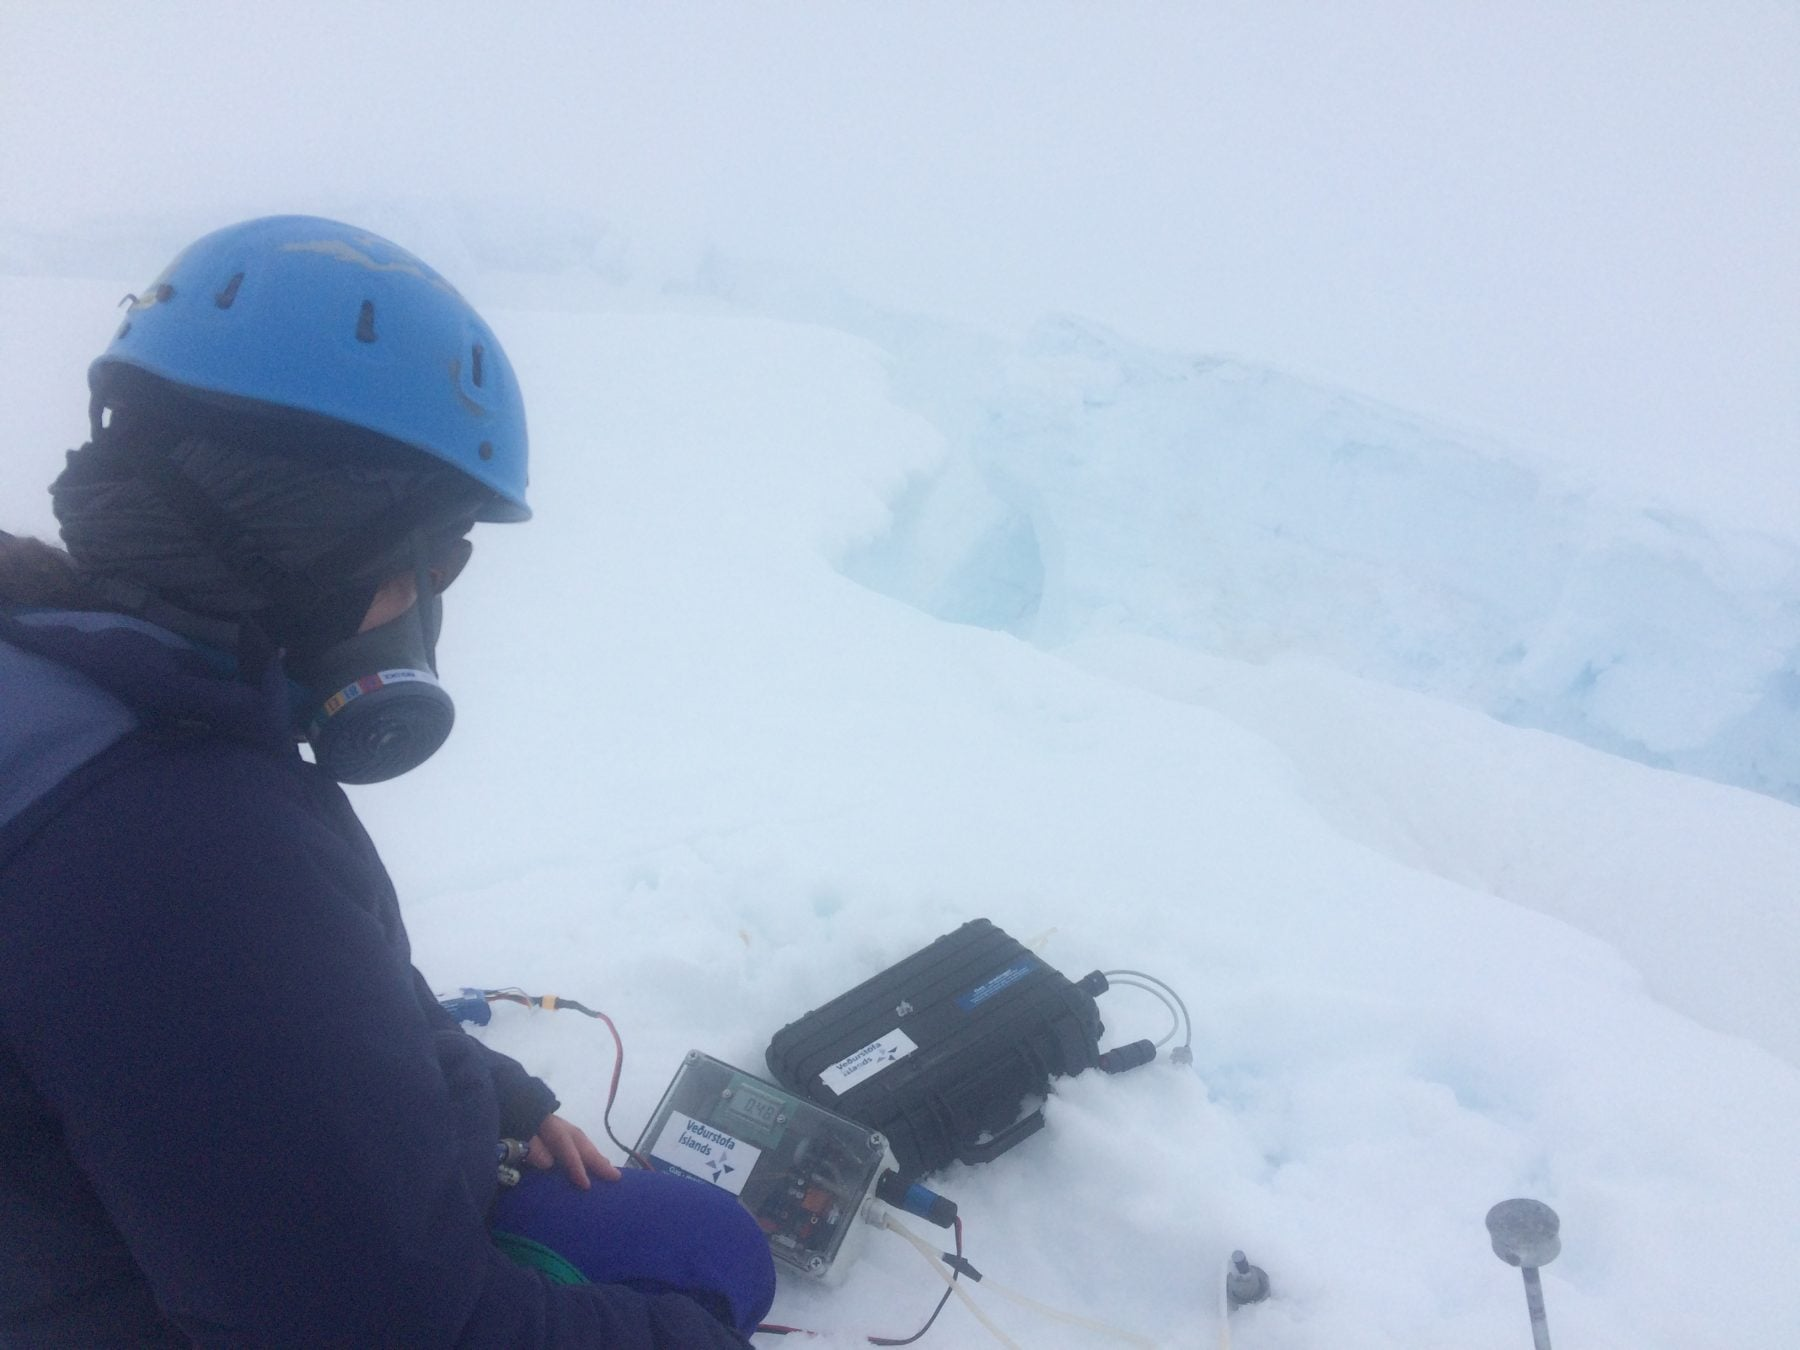 Ask A Scientist: What Exactly Do Volcanic Gases Do To People?